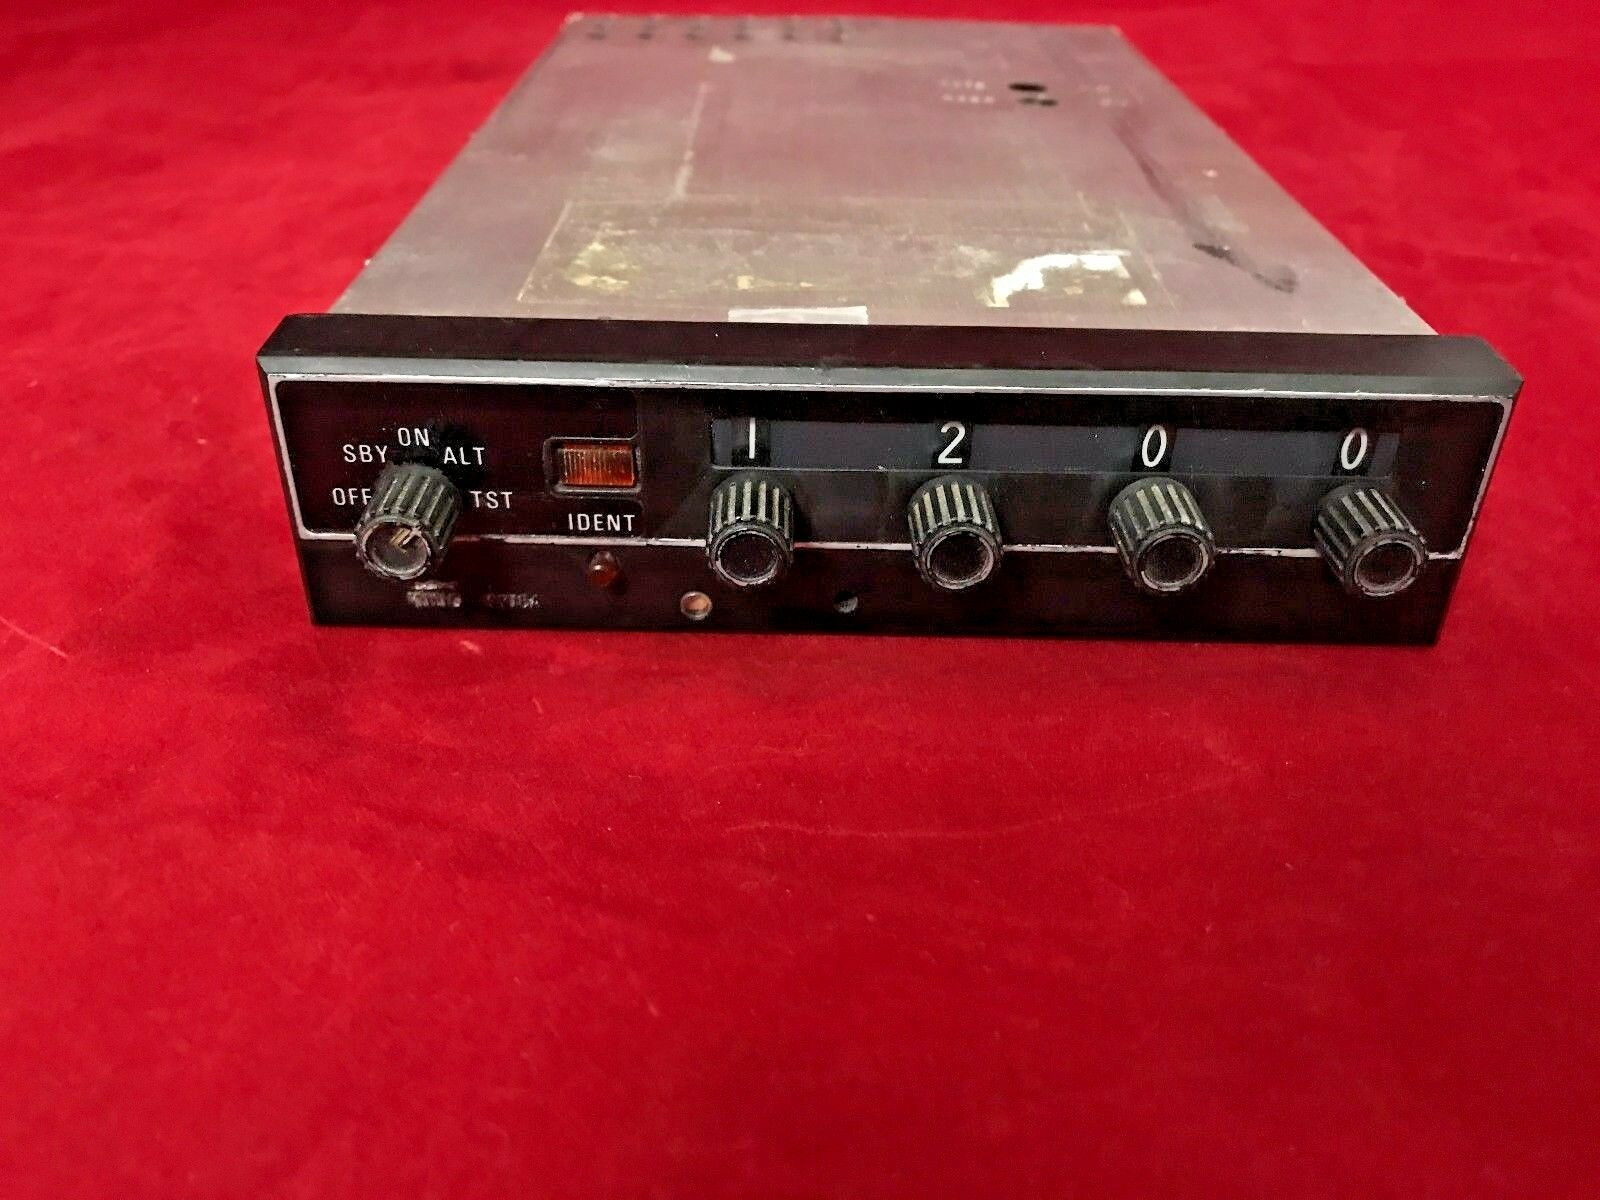 Bendix/King KT-76A Transponder P/N 066-1062-00. Comes with 8130. Exchange $525.